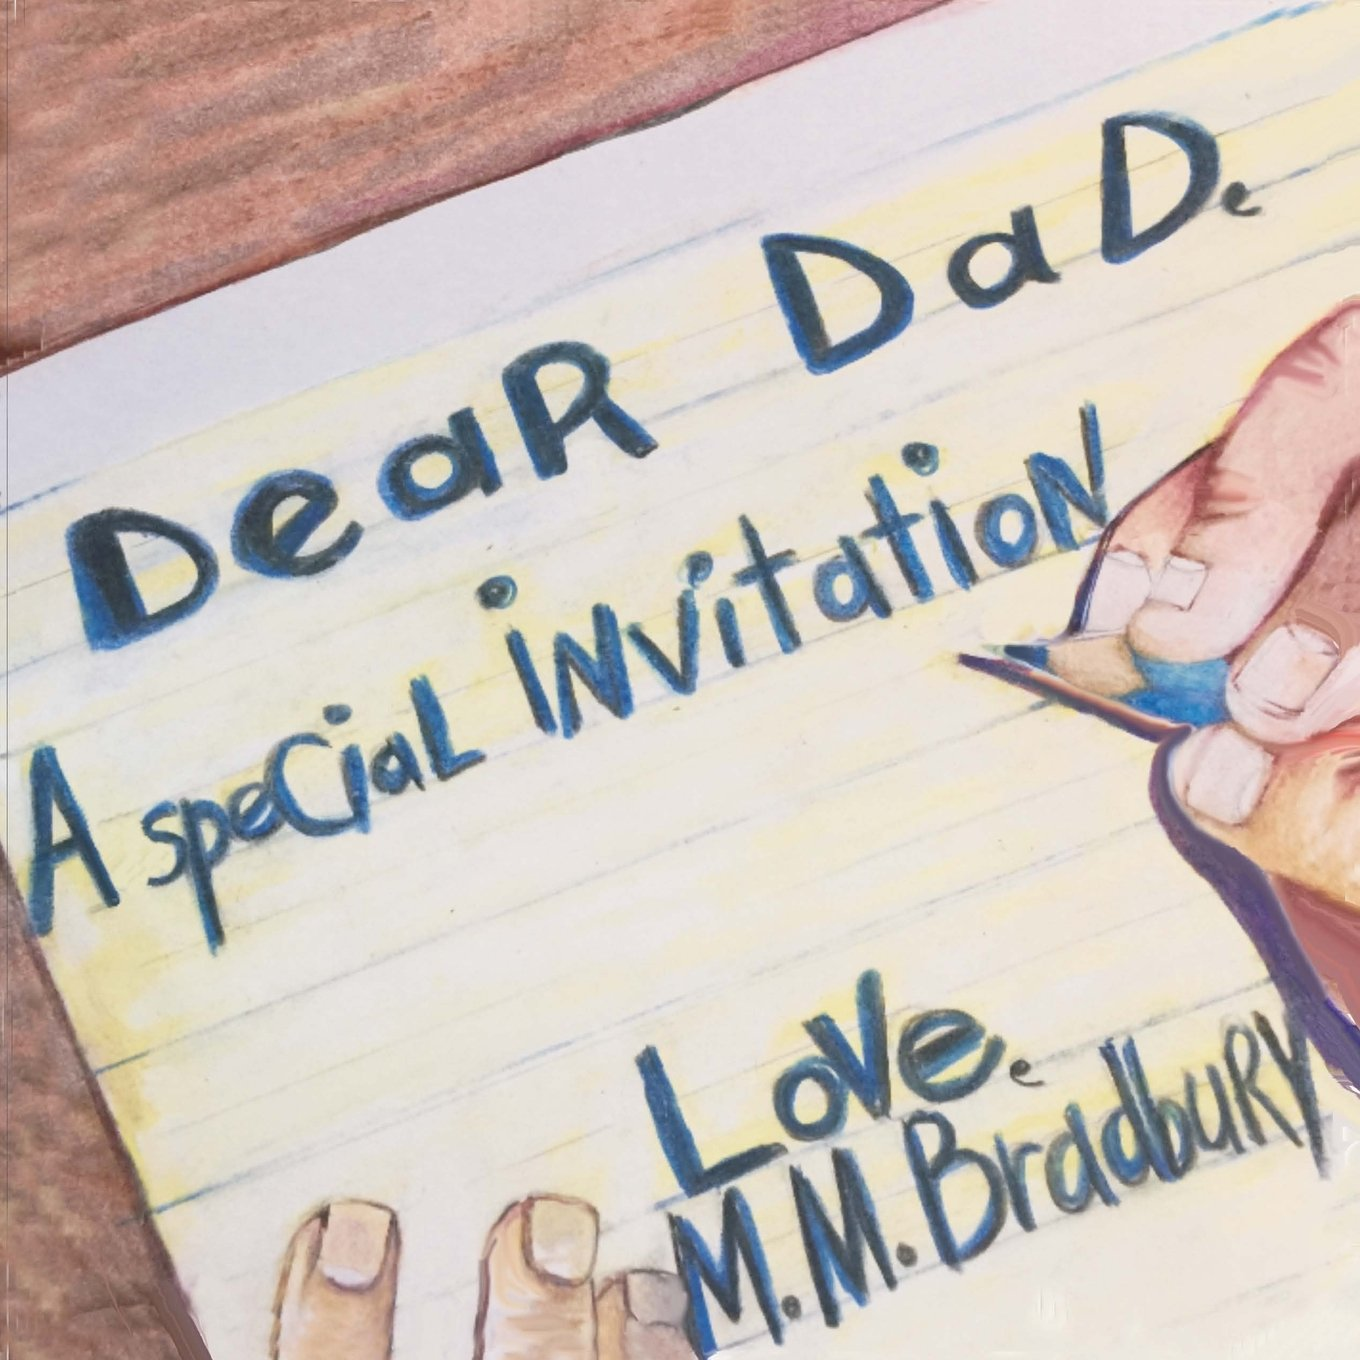 Dear Dad: A Special Invitation PDF